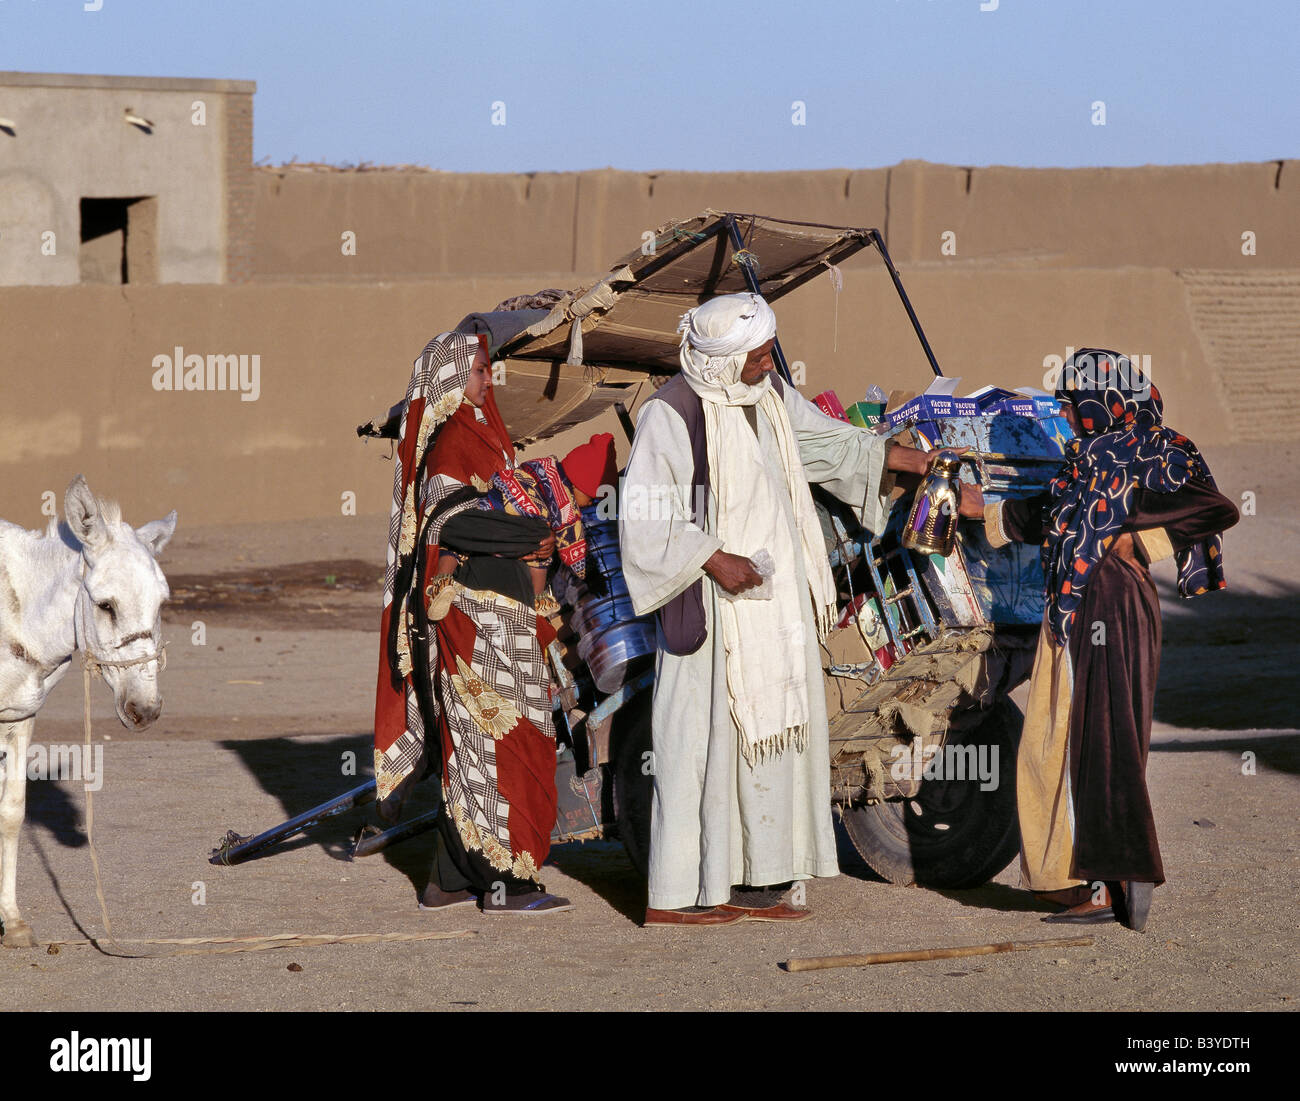 Sudan, Sahara Desert, Soleb. A merchant plies his trade from a donkey cart in the small village of Soleb, close - Stock Image